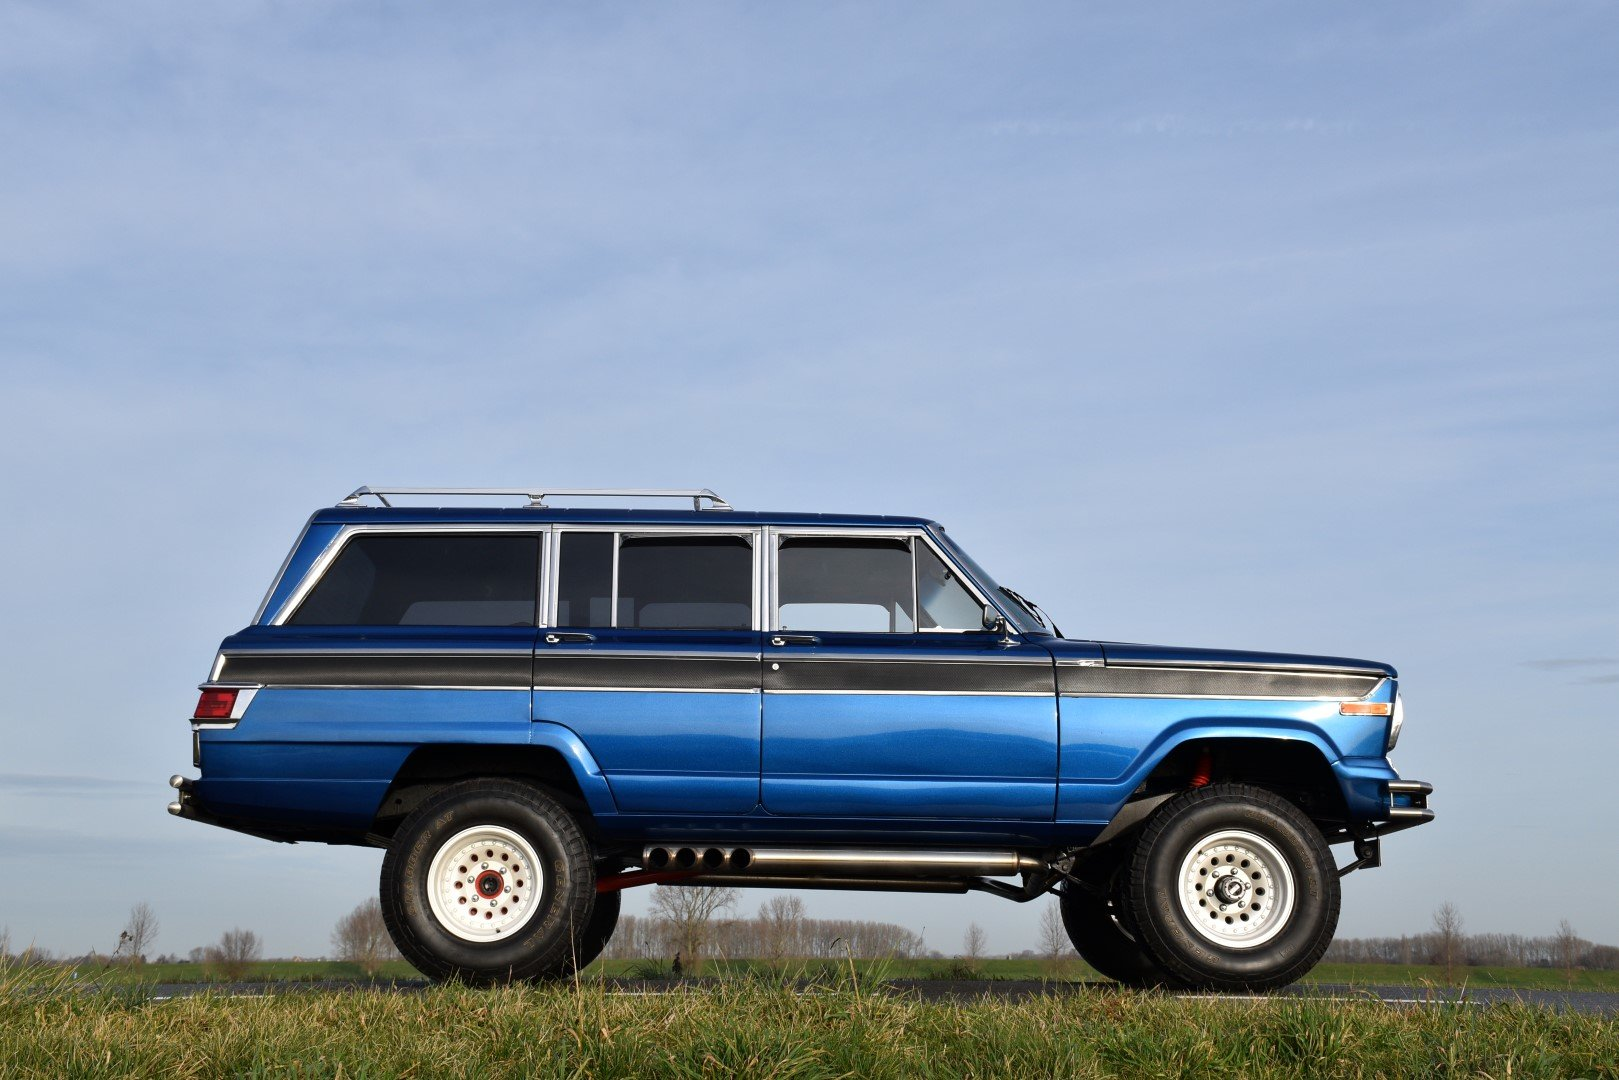 1976 Jeep Wagoneer 5.6 liter V8 For Sale (picture 3 of 6)